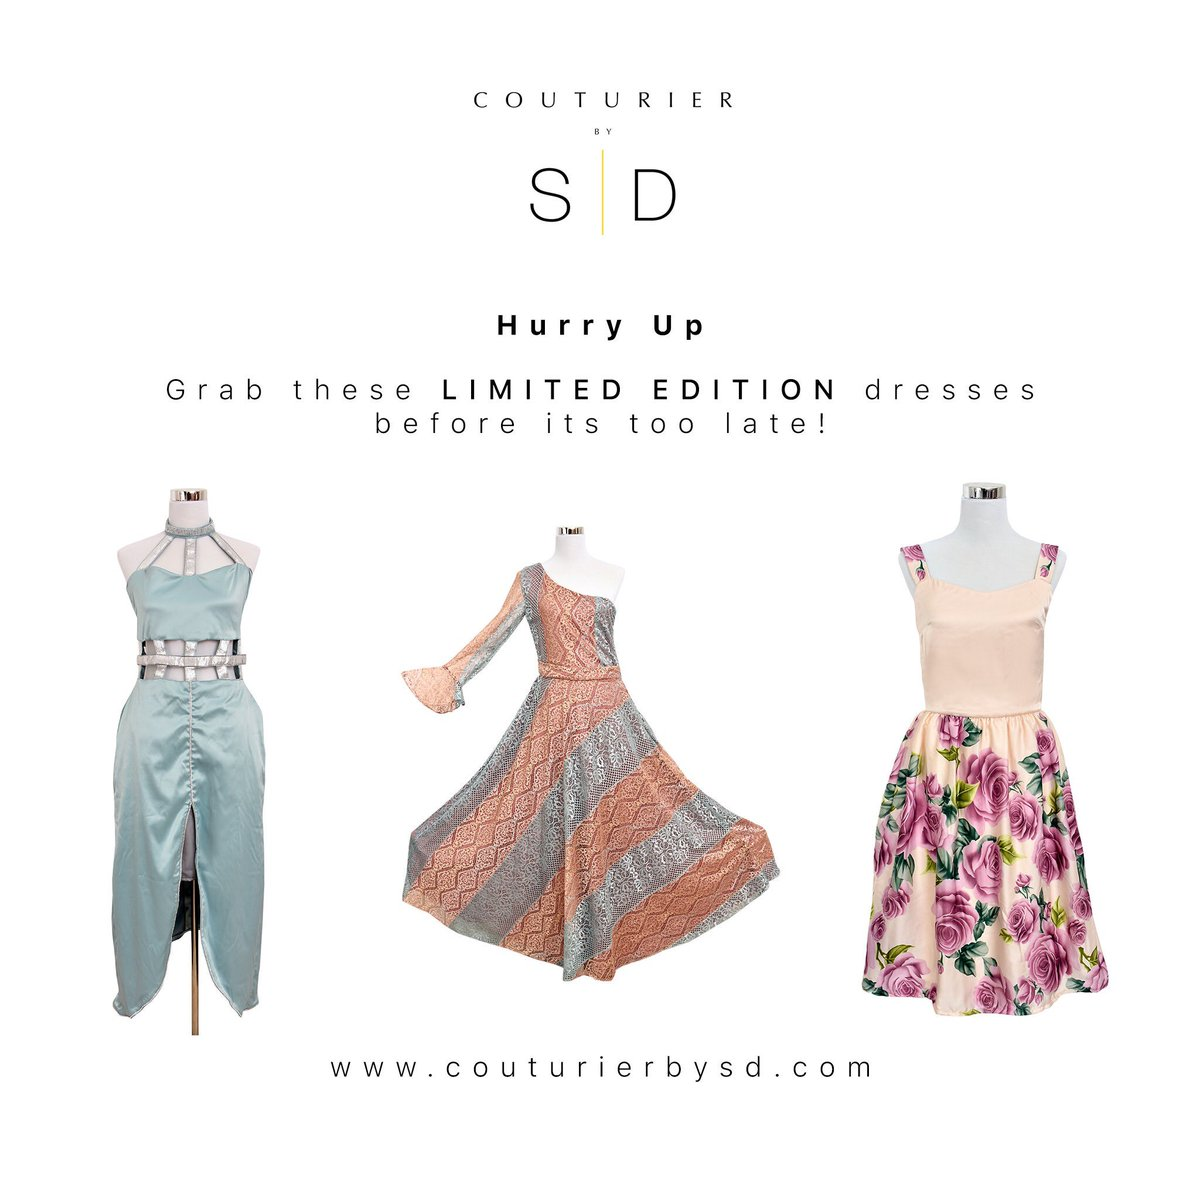 Limited #edition #dresses for your #personality   🌐➡️ https://www.couturierbysd.com  #Smize #wiwt #BOT #Fashionista #Floral #Statement #Extra #Milleniel #Xennials #FashionWeek #Fashionable #Clothing #ladiesnight #ladies #beauty #fashionnova #fashiondaily #love #wearyourpersonality